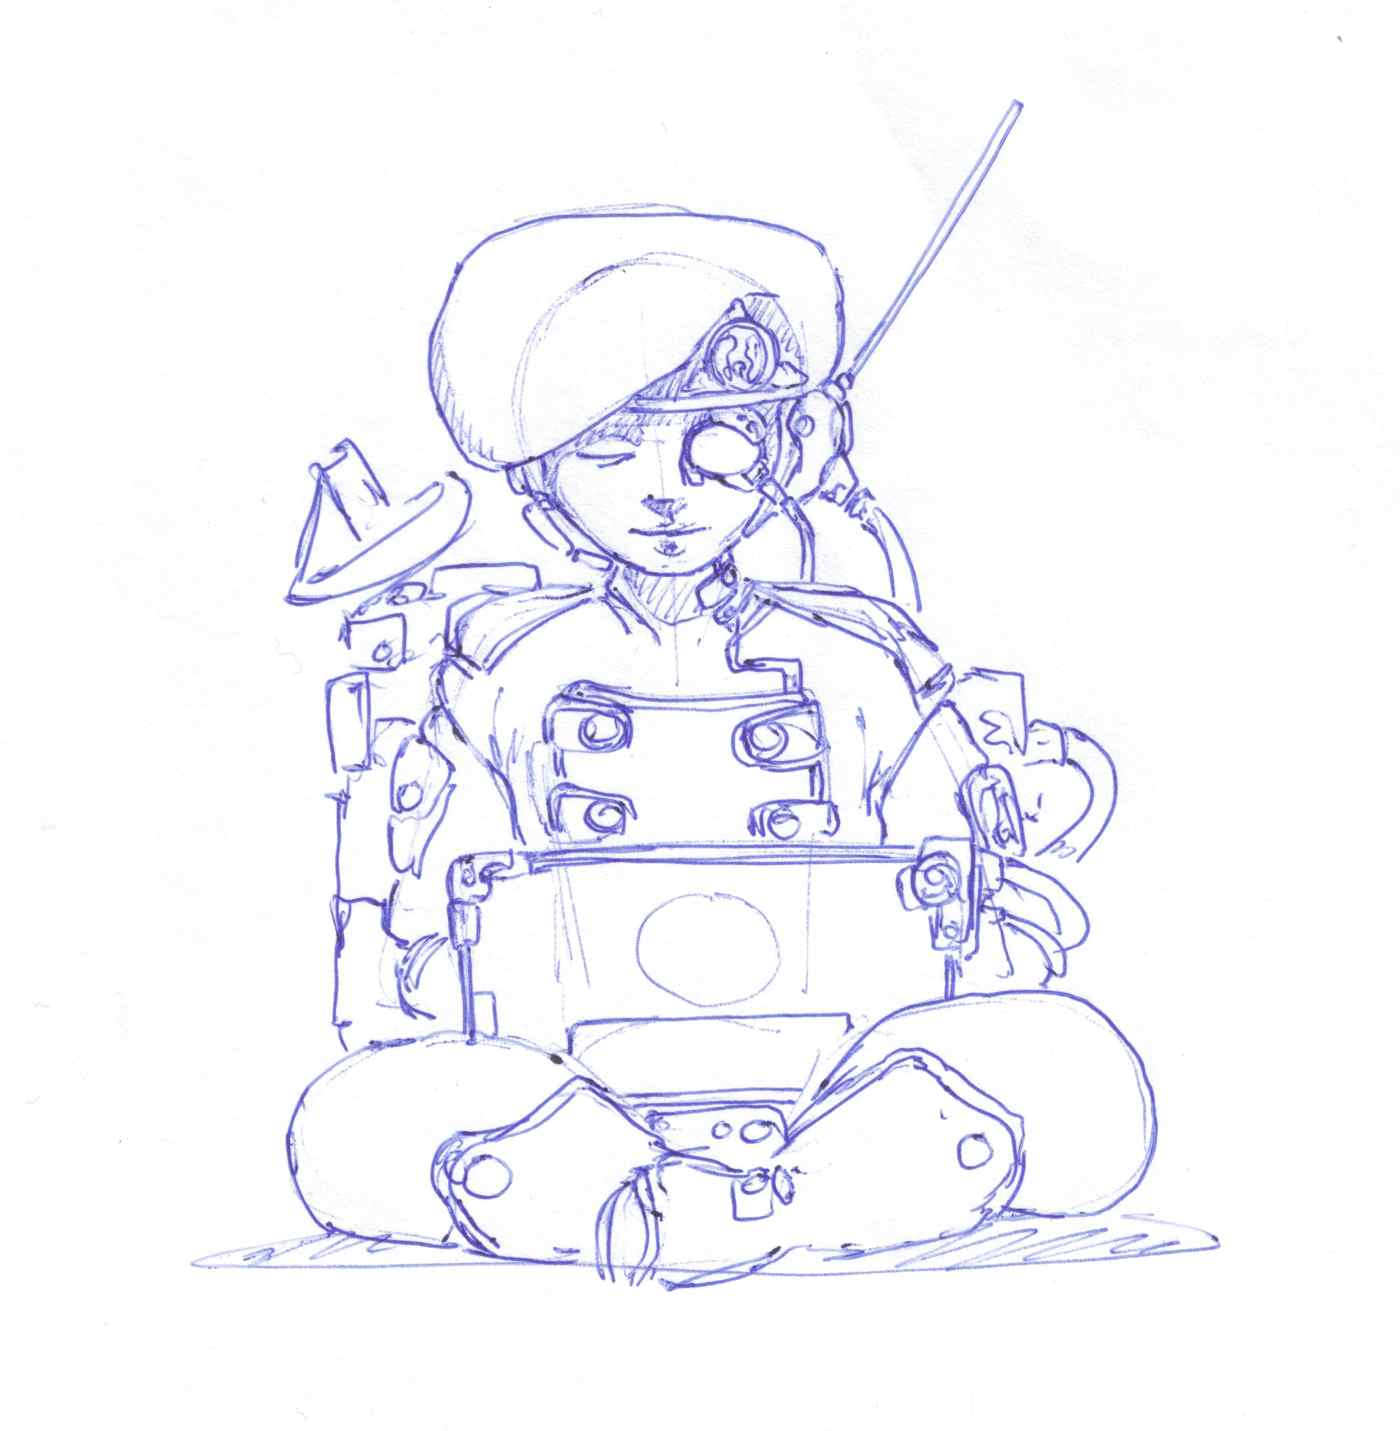 Character development sketch three, communications officer